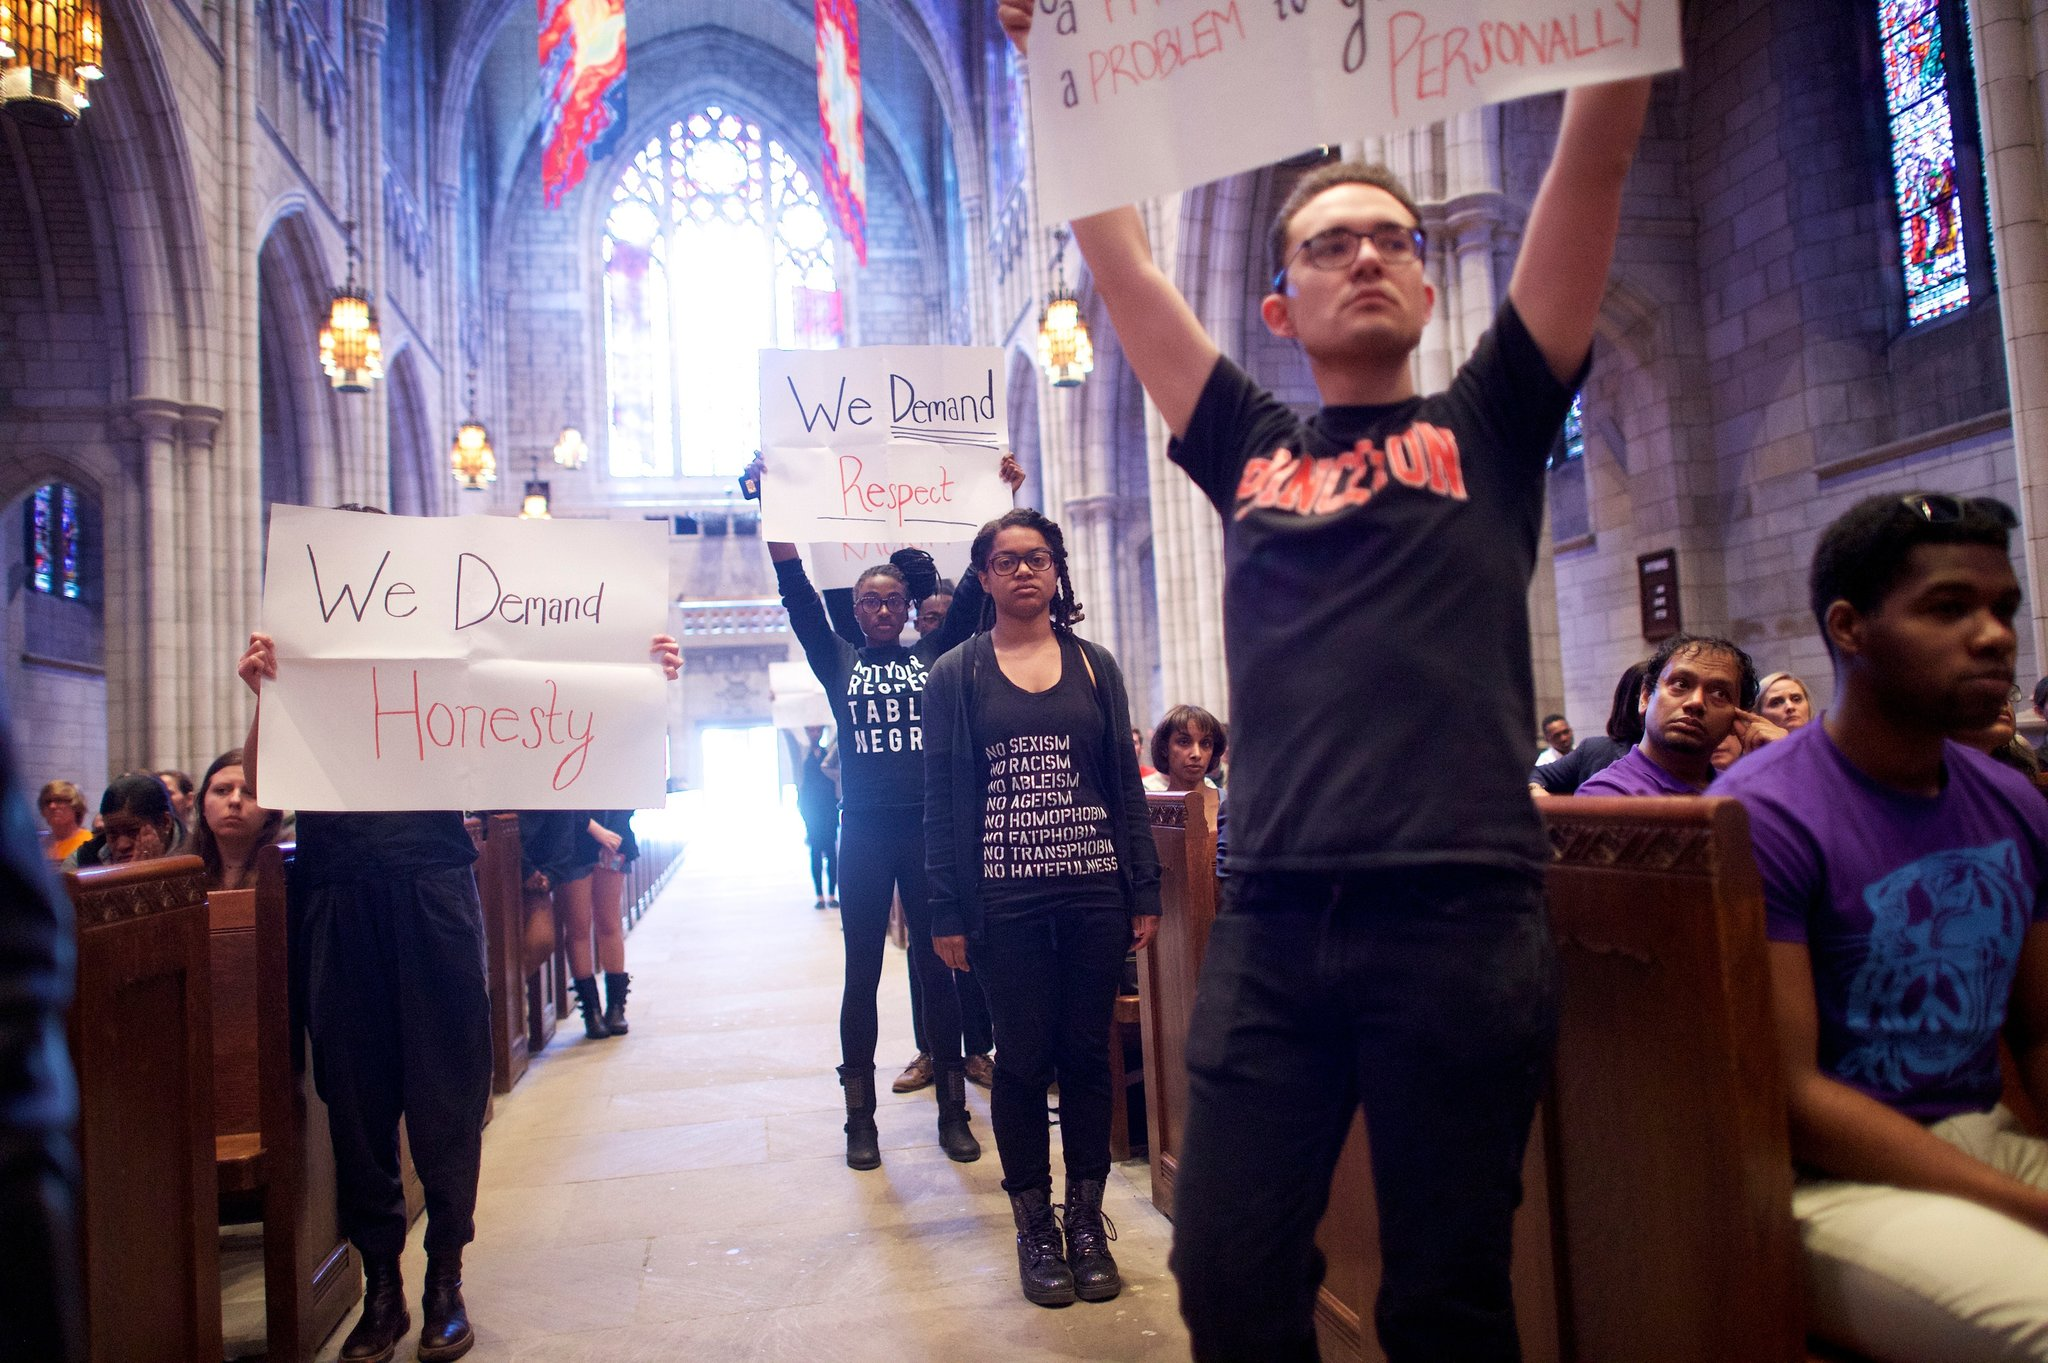 """Students holding signs such as """"We Demand Honesty"""" and """"We Demand Respect"""" during a 2015 demonstration in the Chapel against systemic racism."""